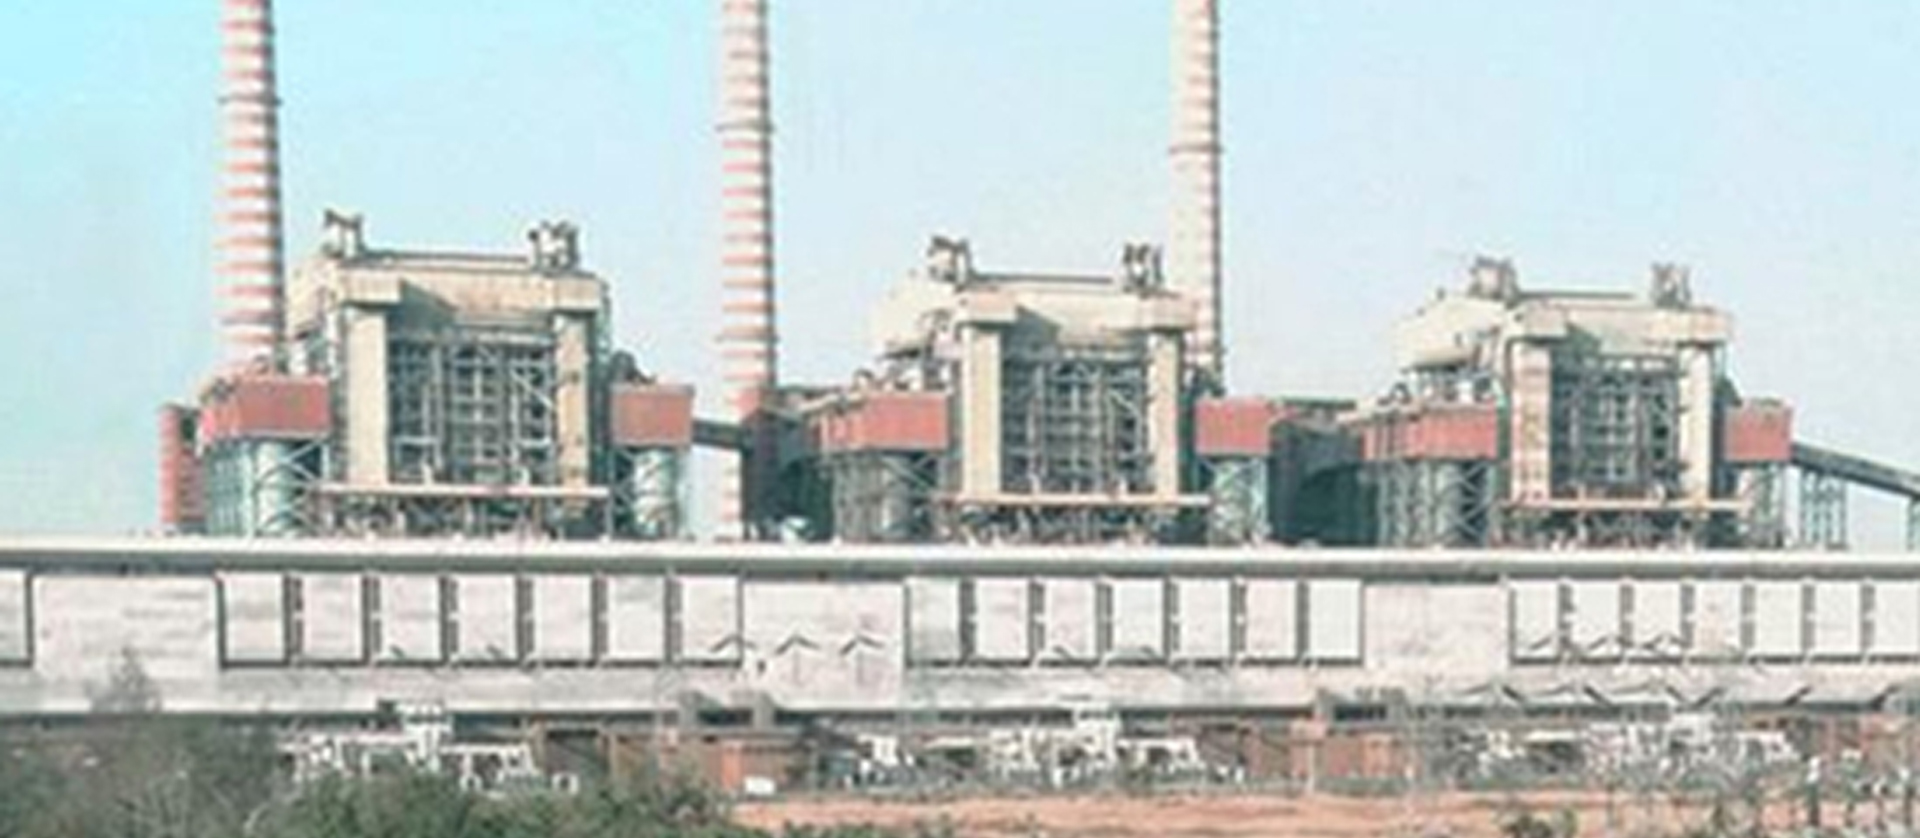 Super Thermal Power Station: Ramagundam, Telangana